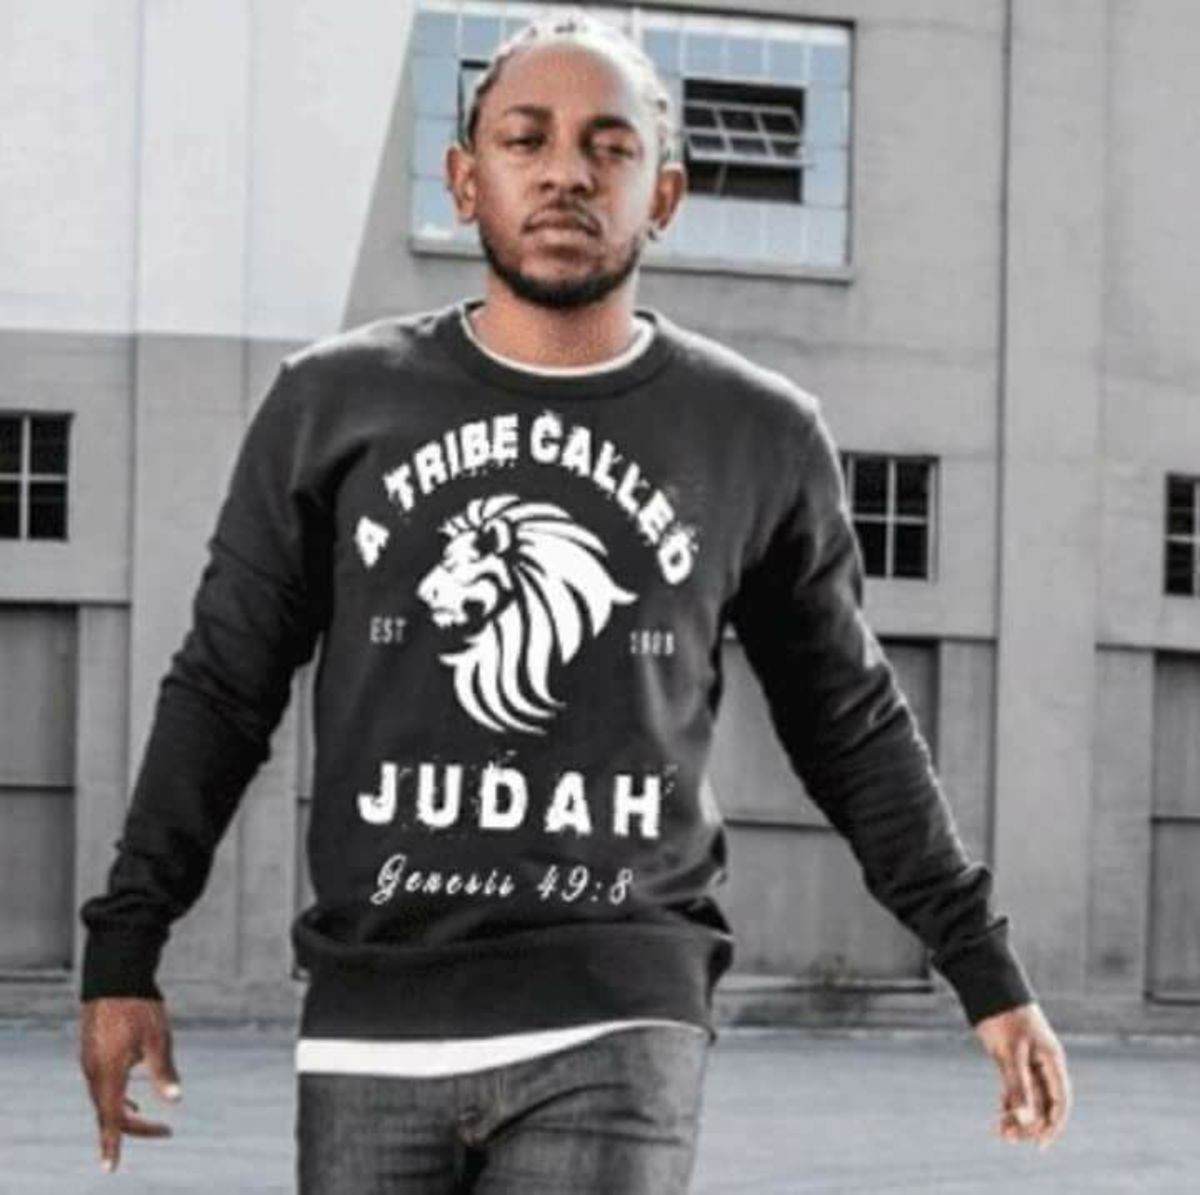 Rapper Kendrick Lamar wearing a shirt that represents his newfound faith as a Hebrew Israelite.